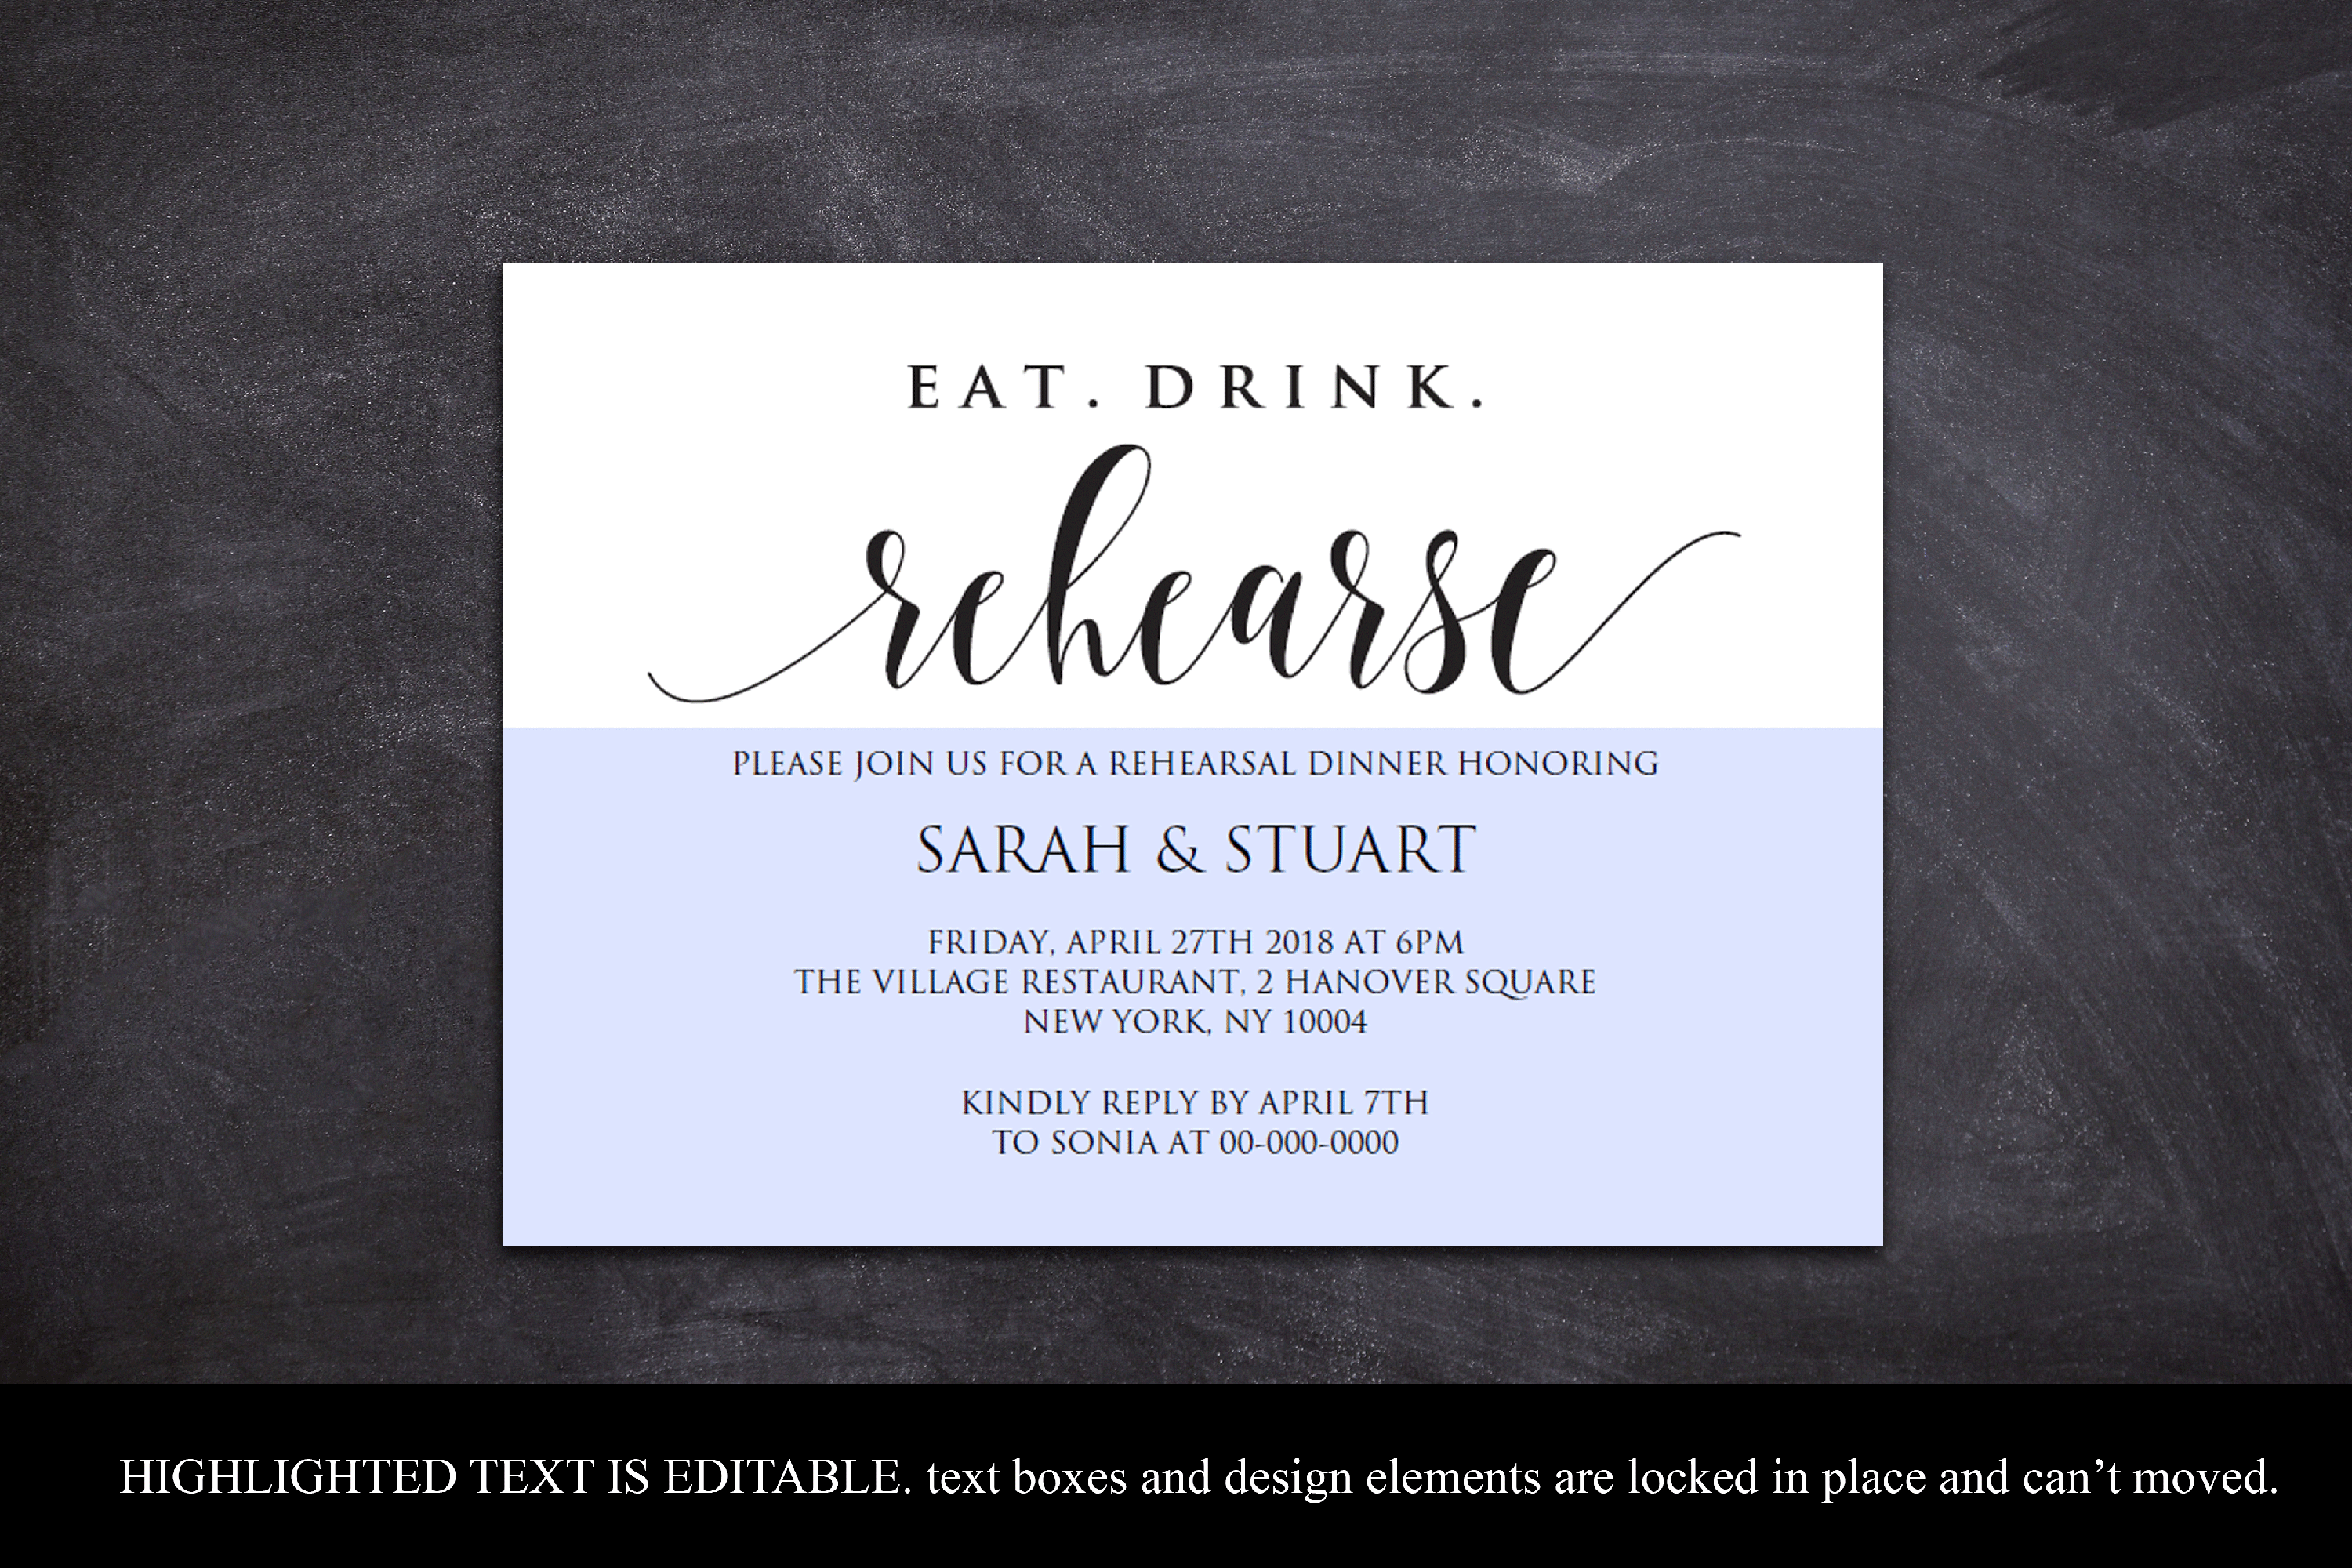 Eat Drink Rehearse Rehearsal dinner invitation template (358507 ...